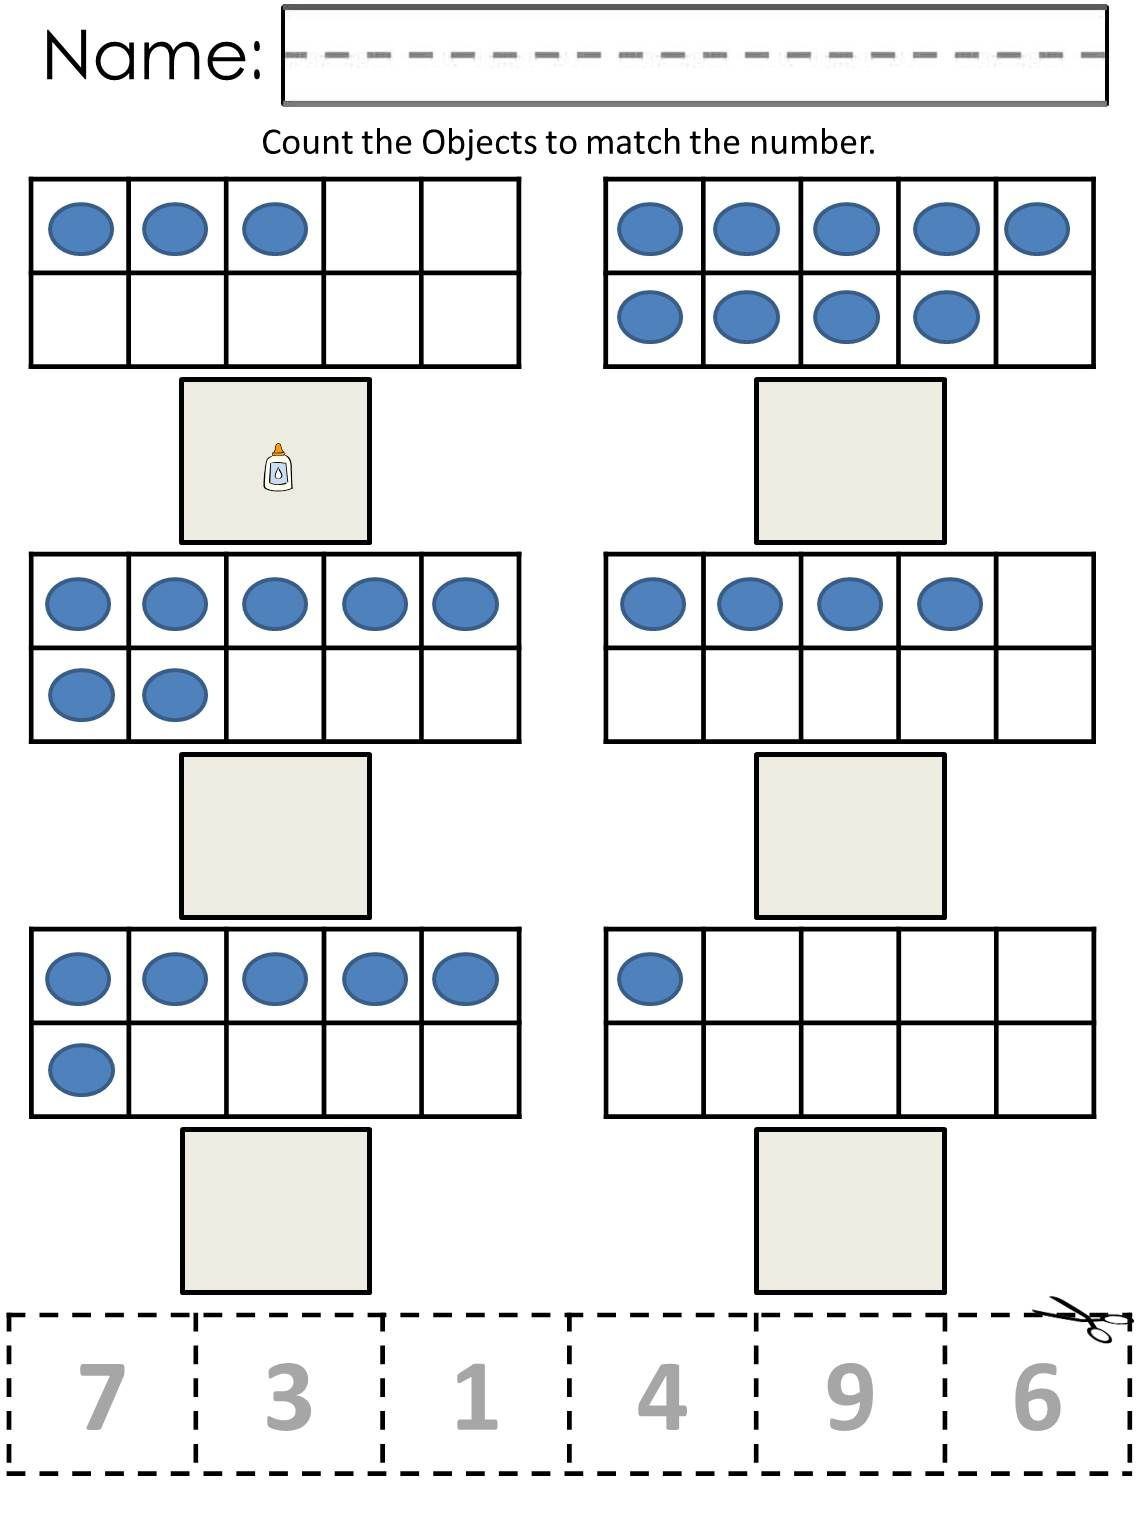 Ten Frame Counting Worksheets Now Available at www.AutismComplete.com   Math  worksheets [ 1520 x 1137 Pixel ]